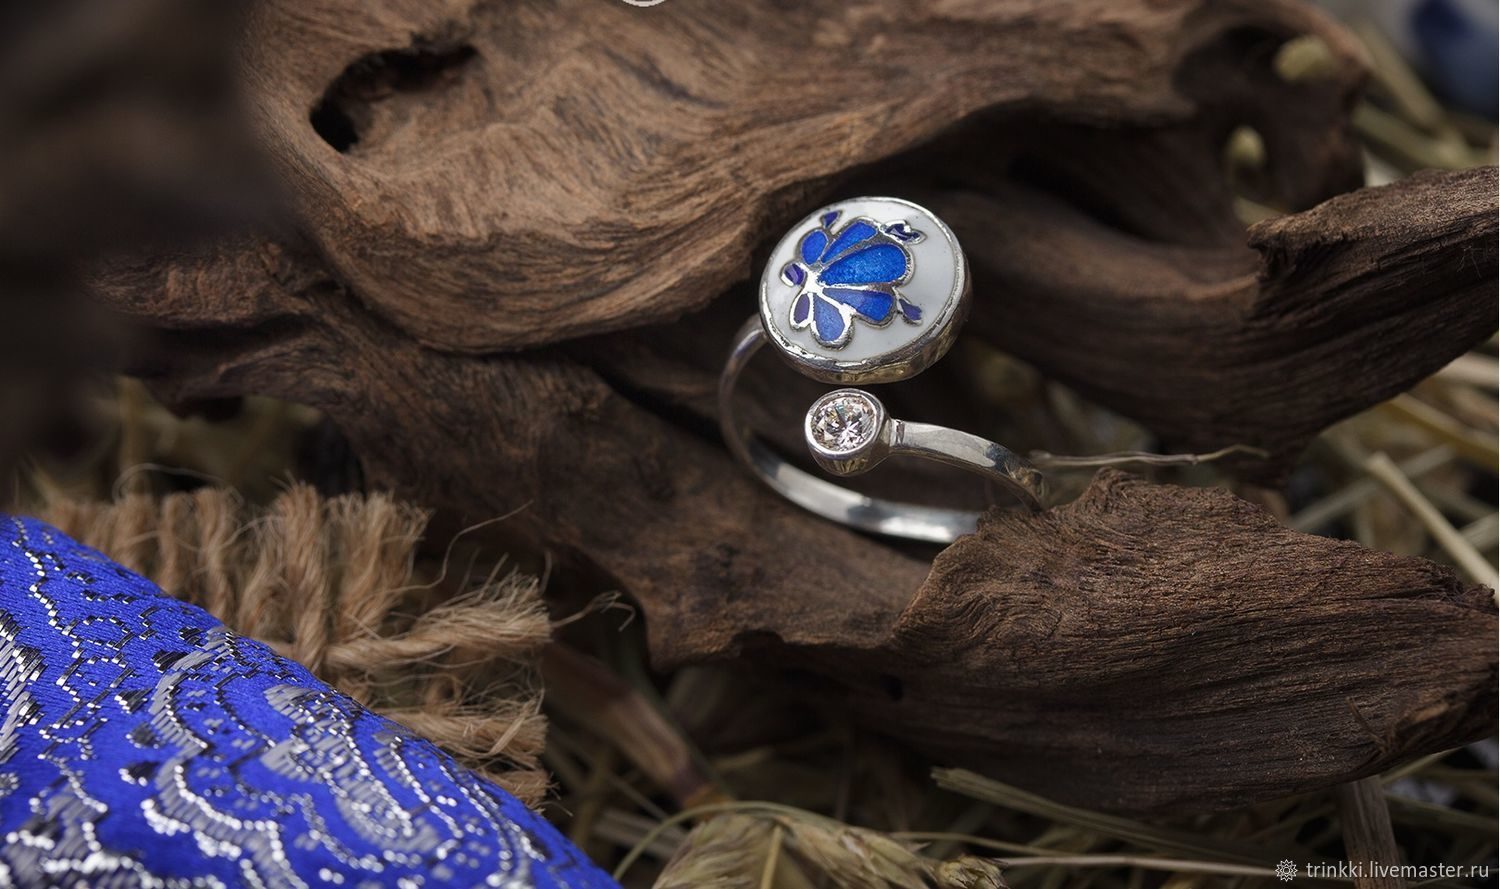 New! Dimensionless ring with a native Russian patterns Gzhel. - 925 silver, white and blue enamel, cubic Zirconia